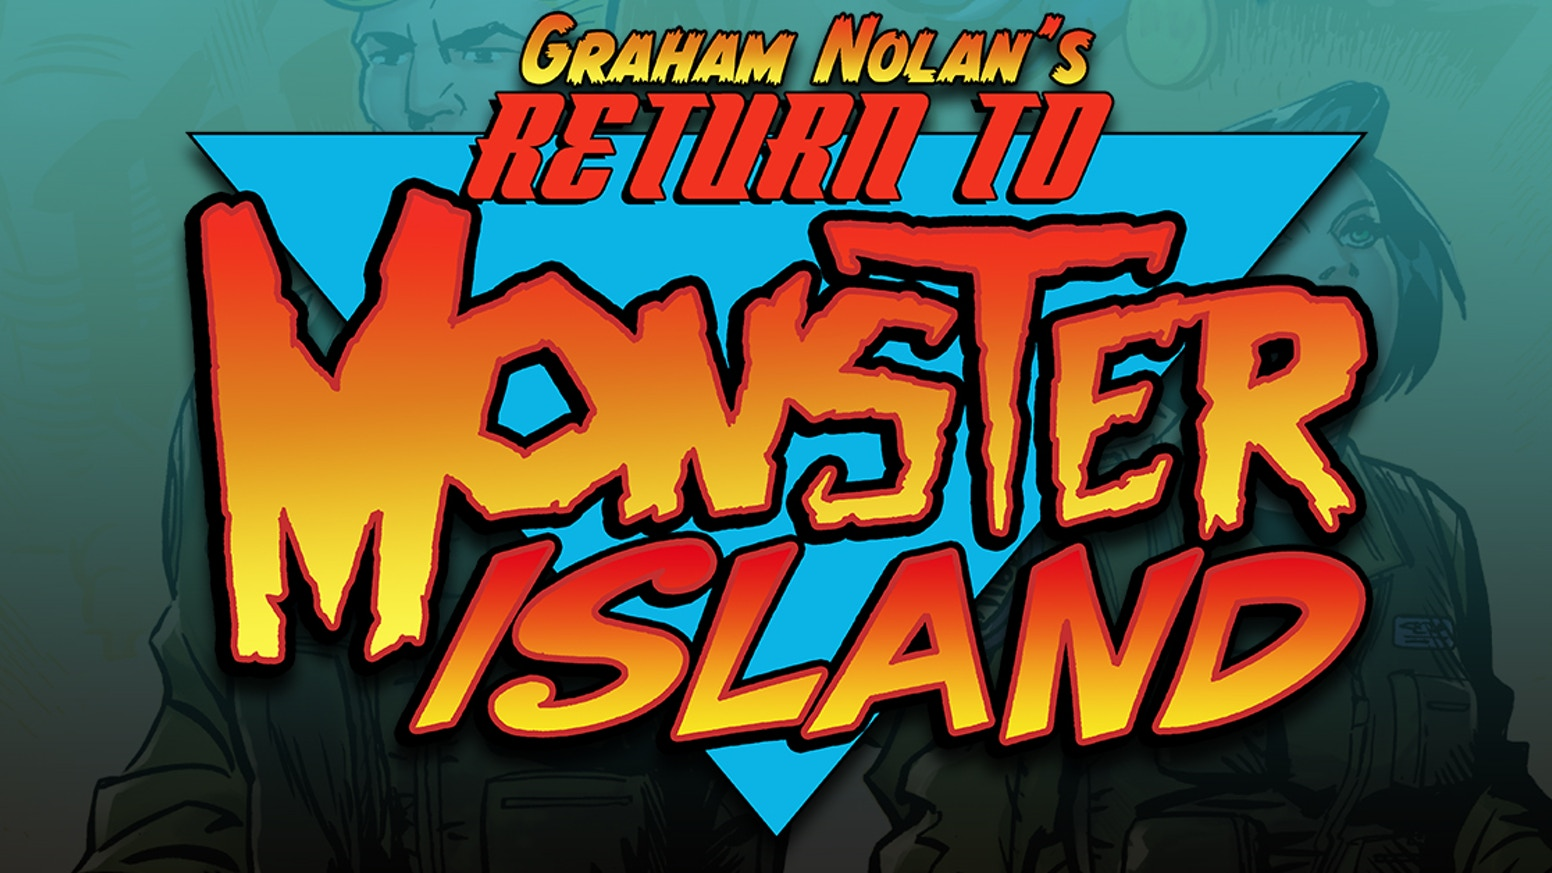 More monsters! More aliens! More classic comics adventure with Return to Monster Island by Bane co-creator Graham Nolan!